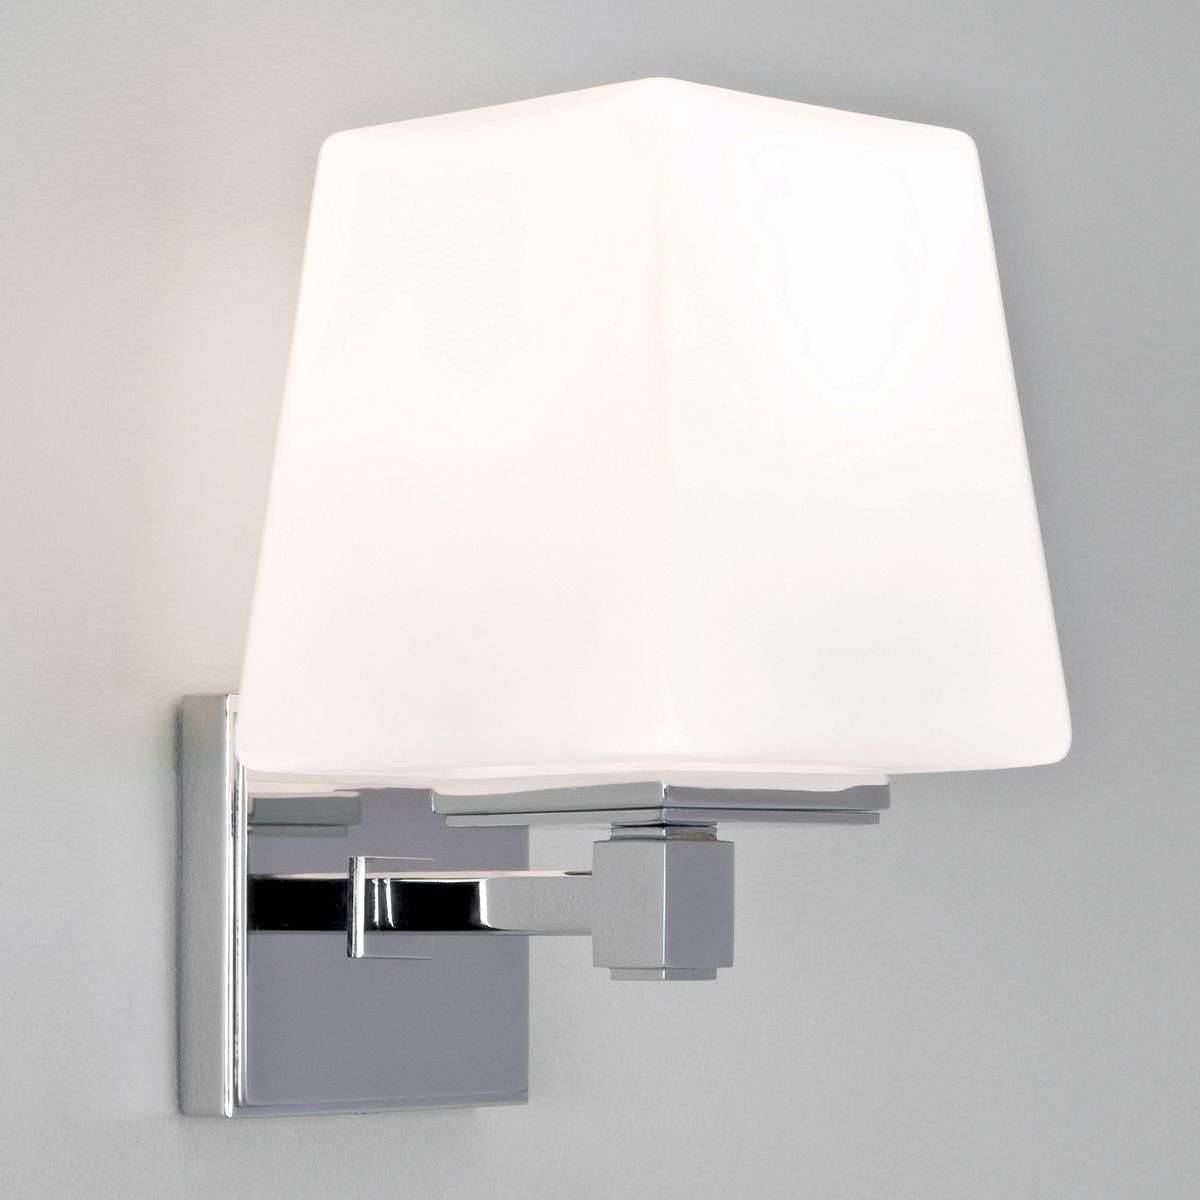 Noventa Wall Light Trendy-1020008-32